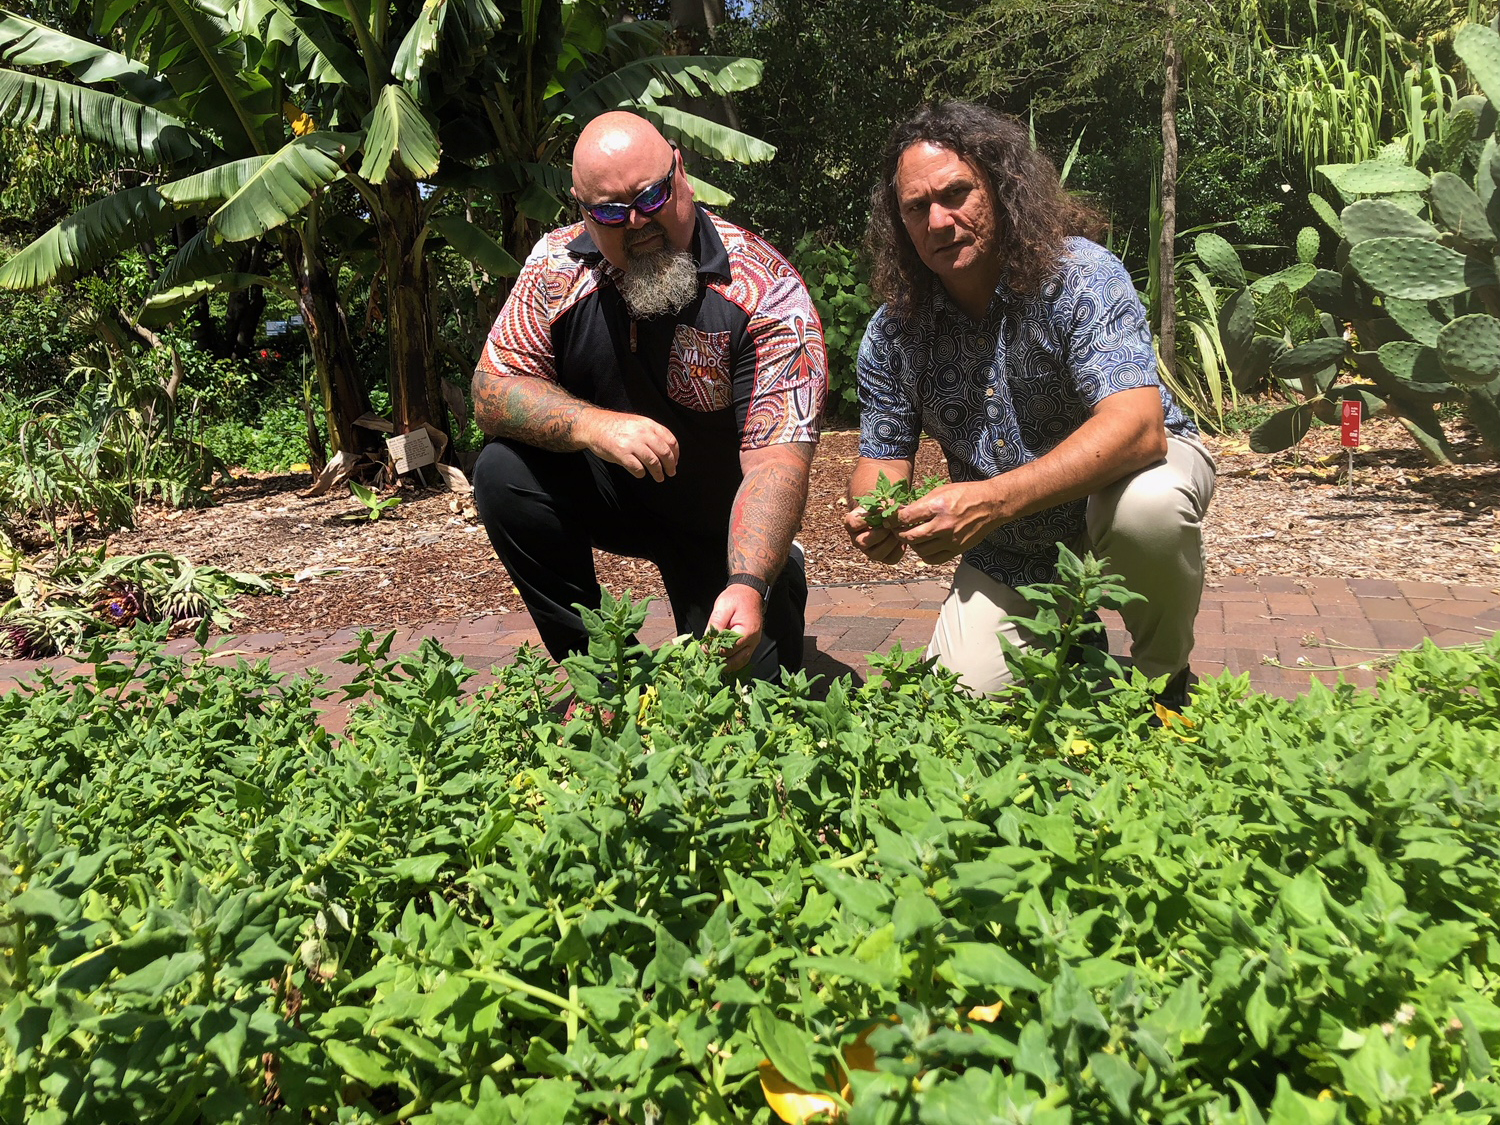 Mirvac has joined forces with cultural start-up Yerrabingin to bring to life a unique, Indigenous rooftop farm concept in central Sydney. Image: Christian and Clarence from Yerrabingin / Supplied